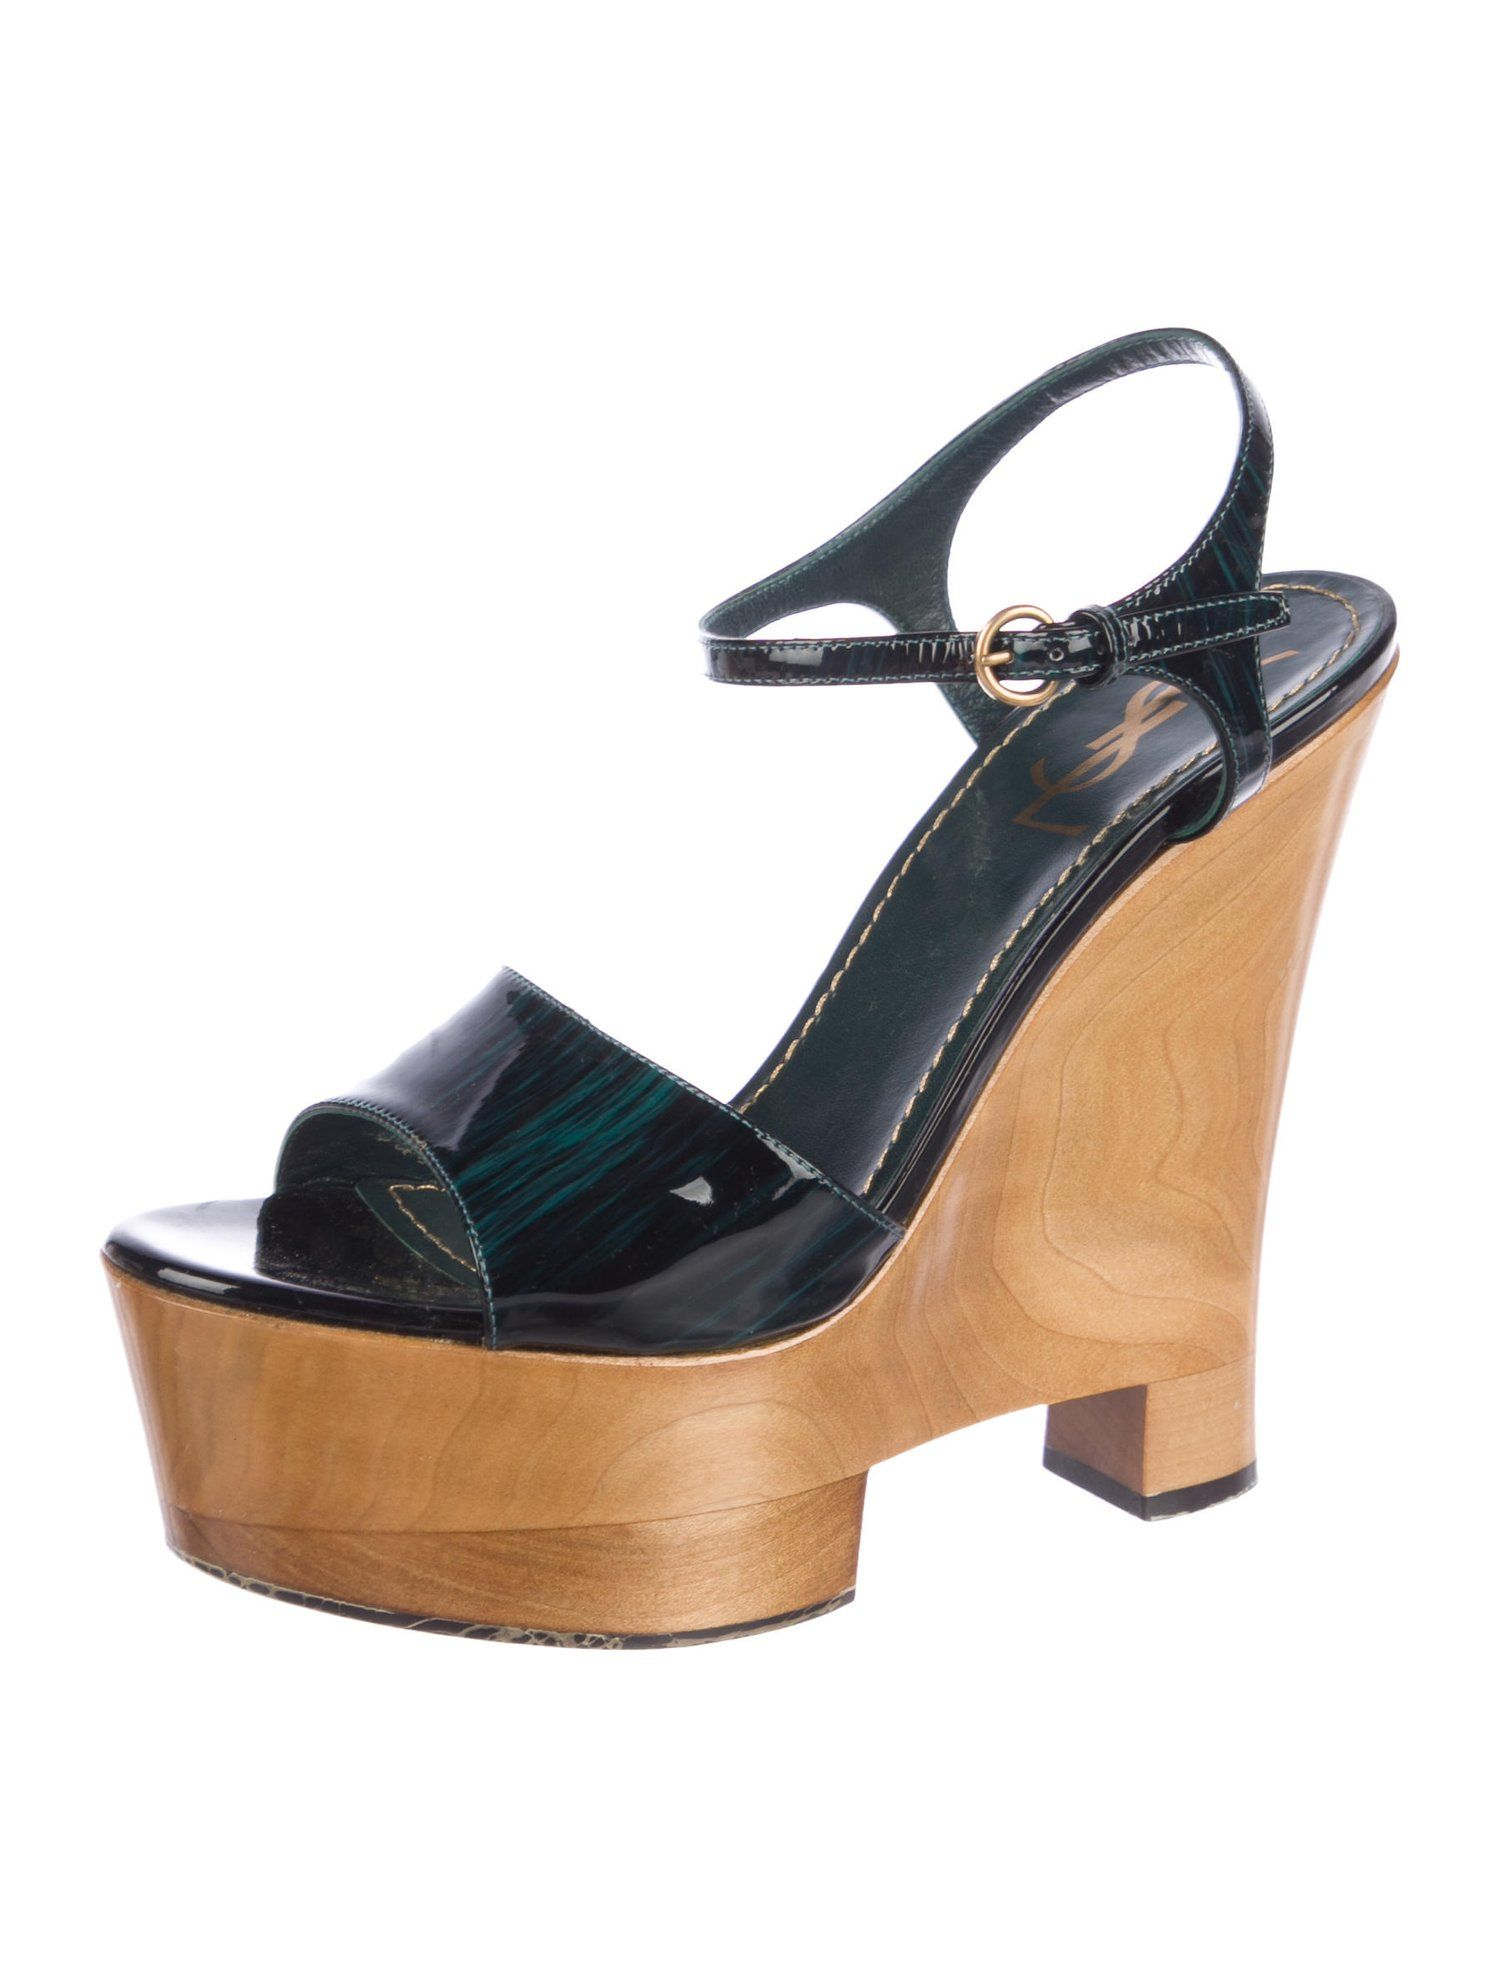 Yves Saint Laurent Patent Leather Wedge Sandals  Laurent  Saint  Yves c2e9356fd1